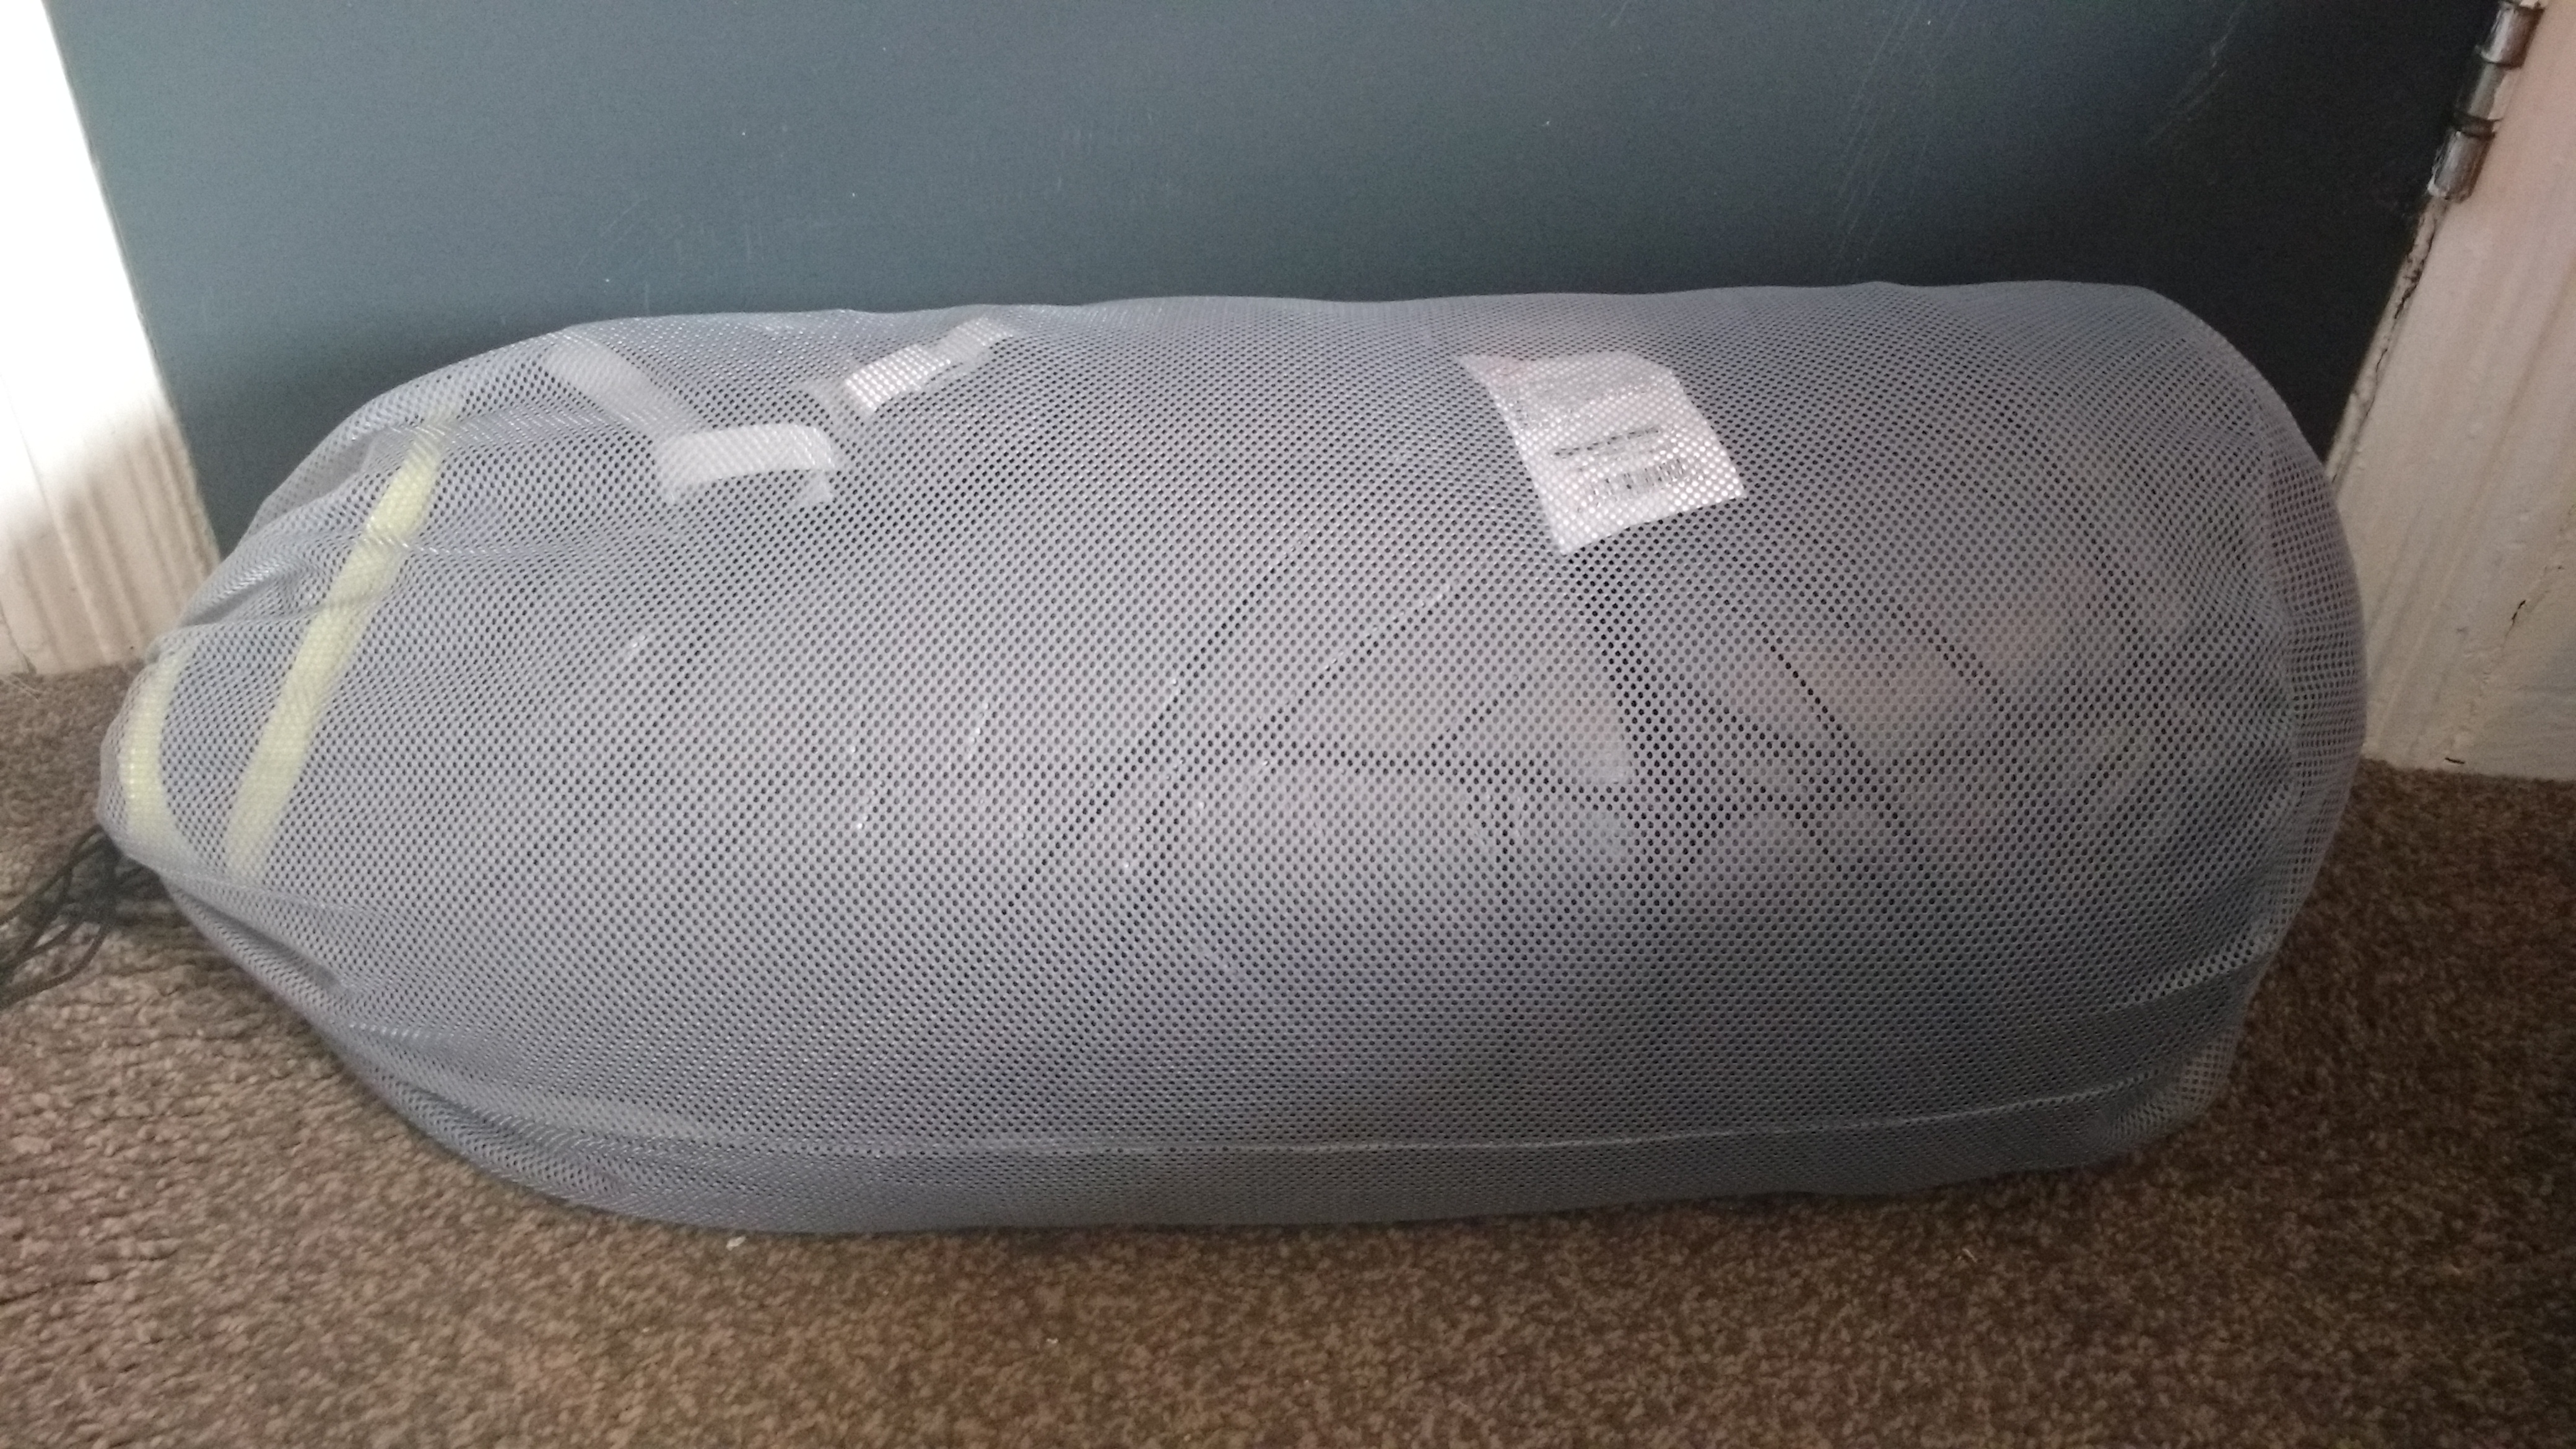 Aegismax Sleeping Bag Review